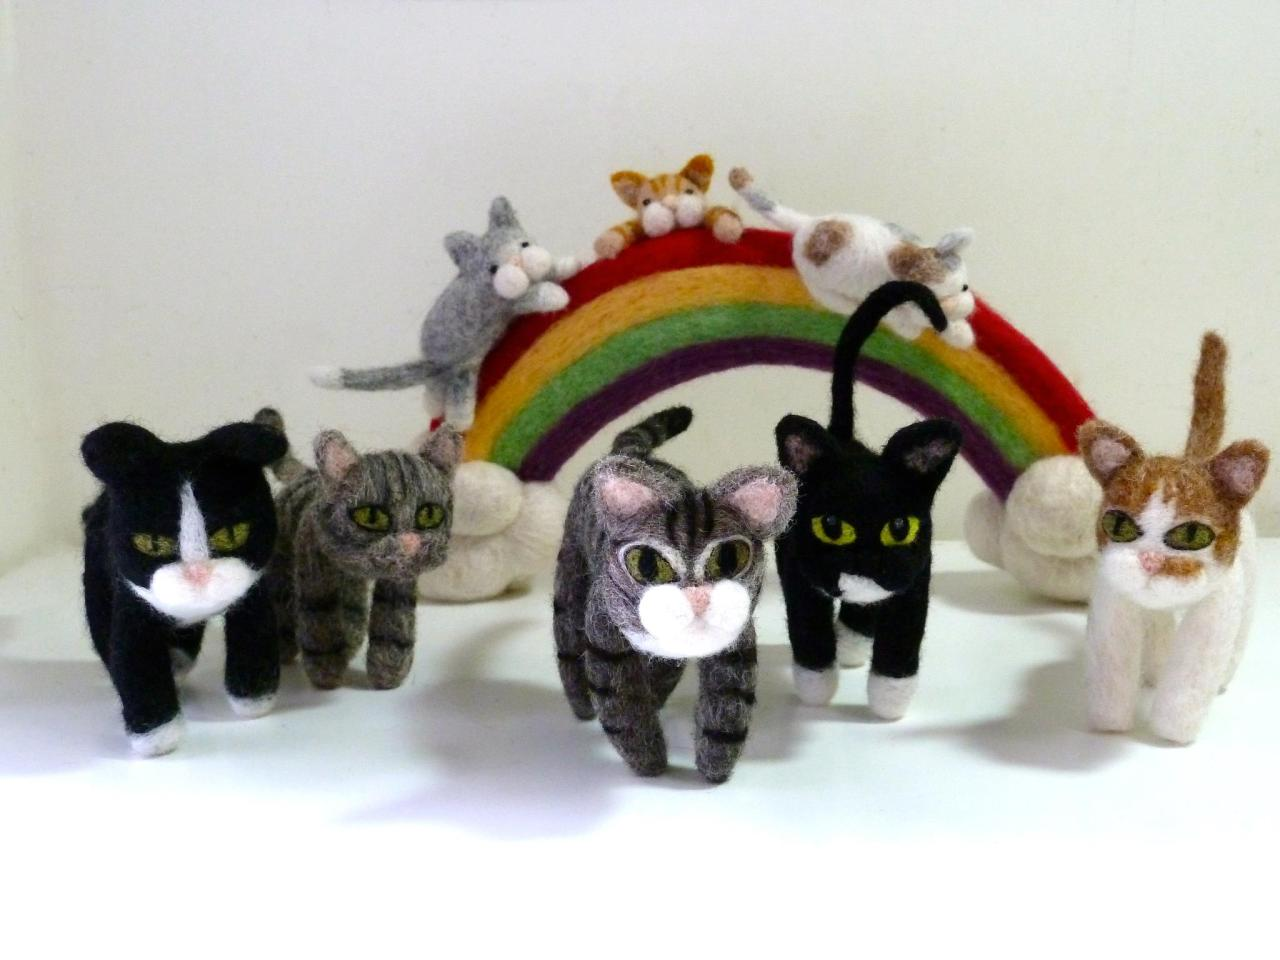 Felt Cats made by Gina Yeung.